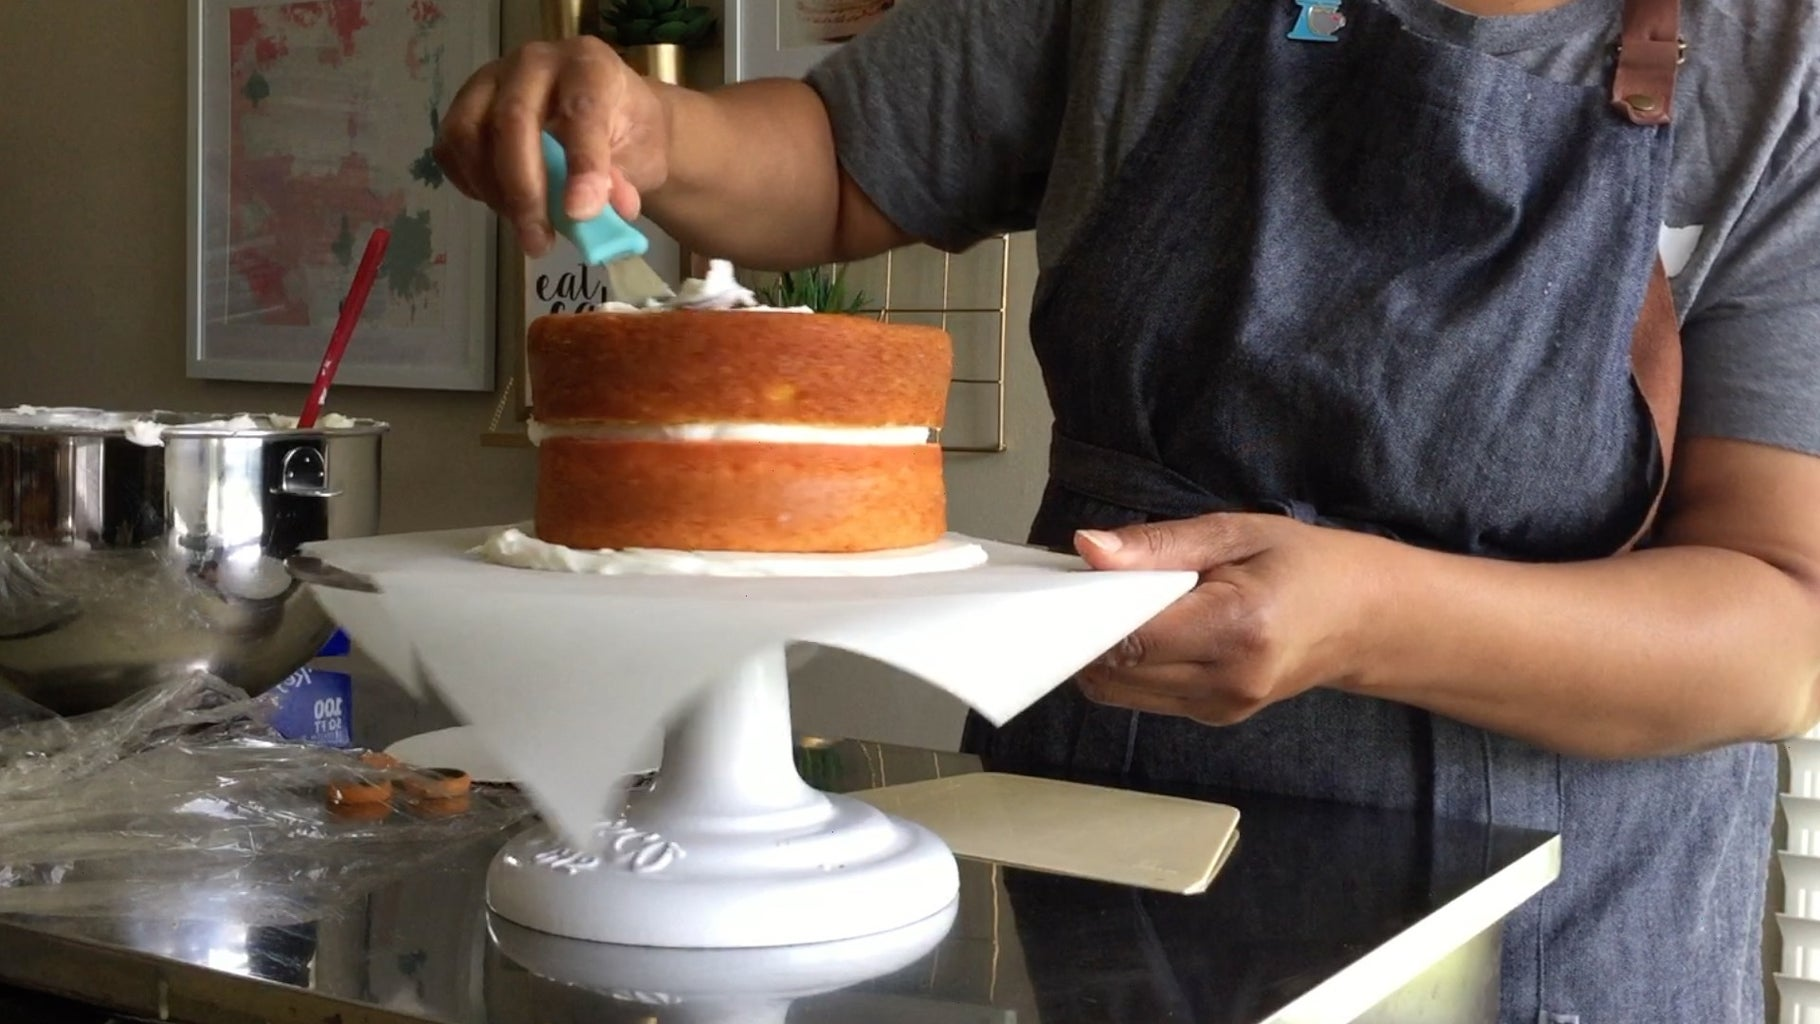 Step 3: Ice Your Cake